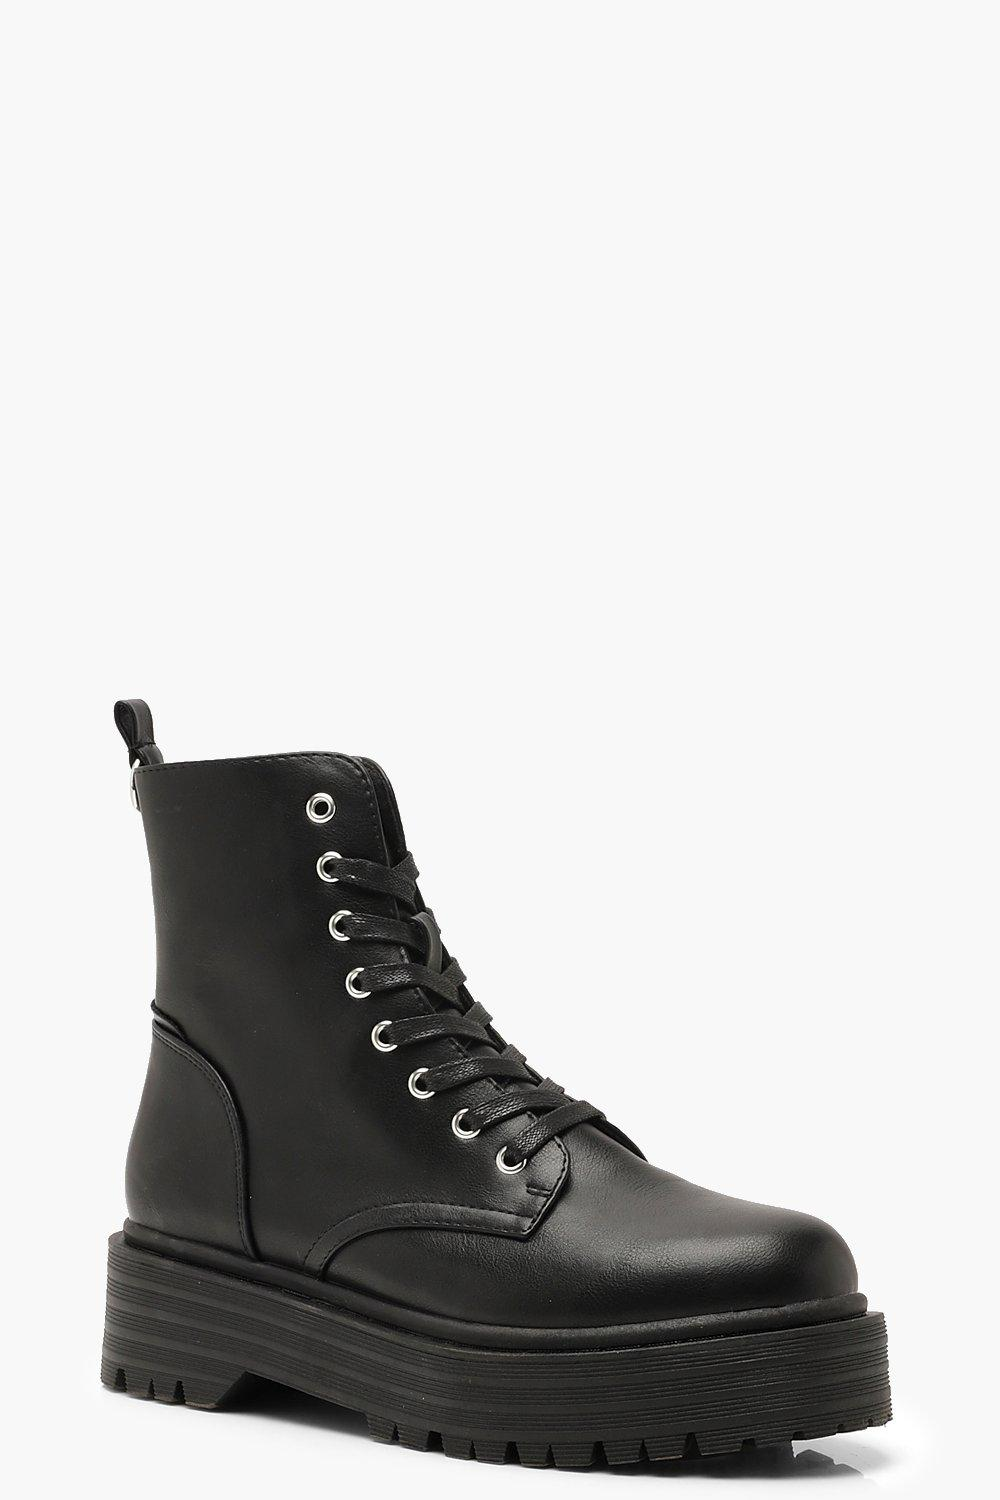 5af7bec0dc Womens Black Chunky Sole Lace Up Hiker Boots